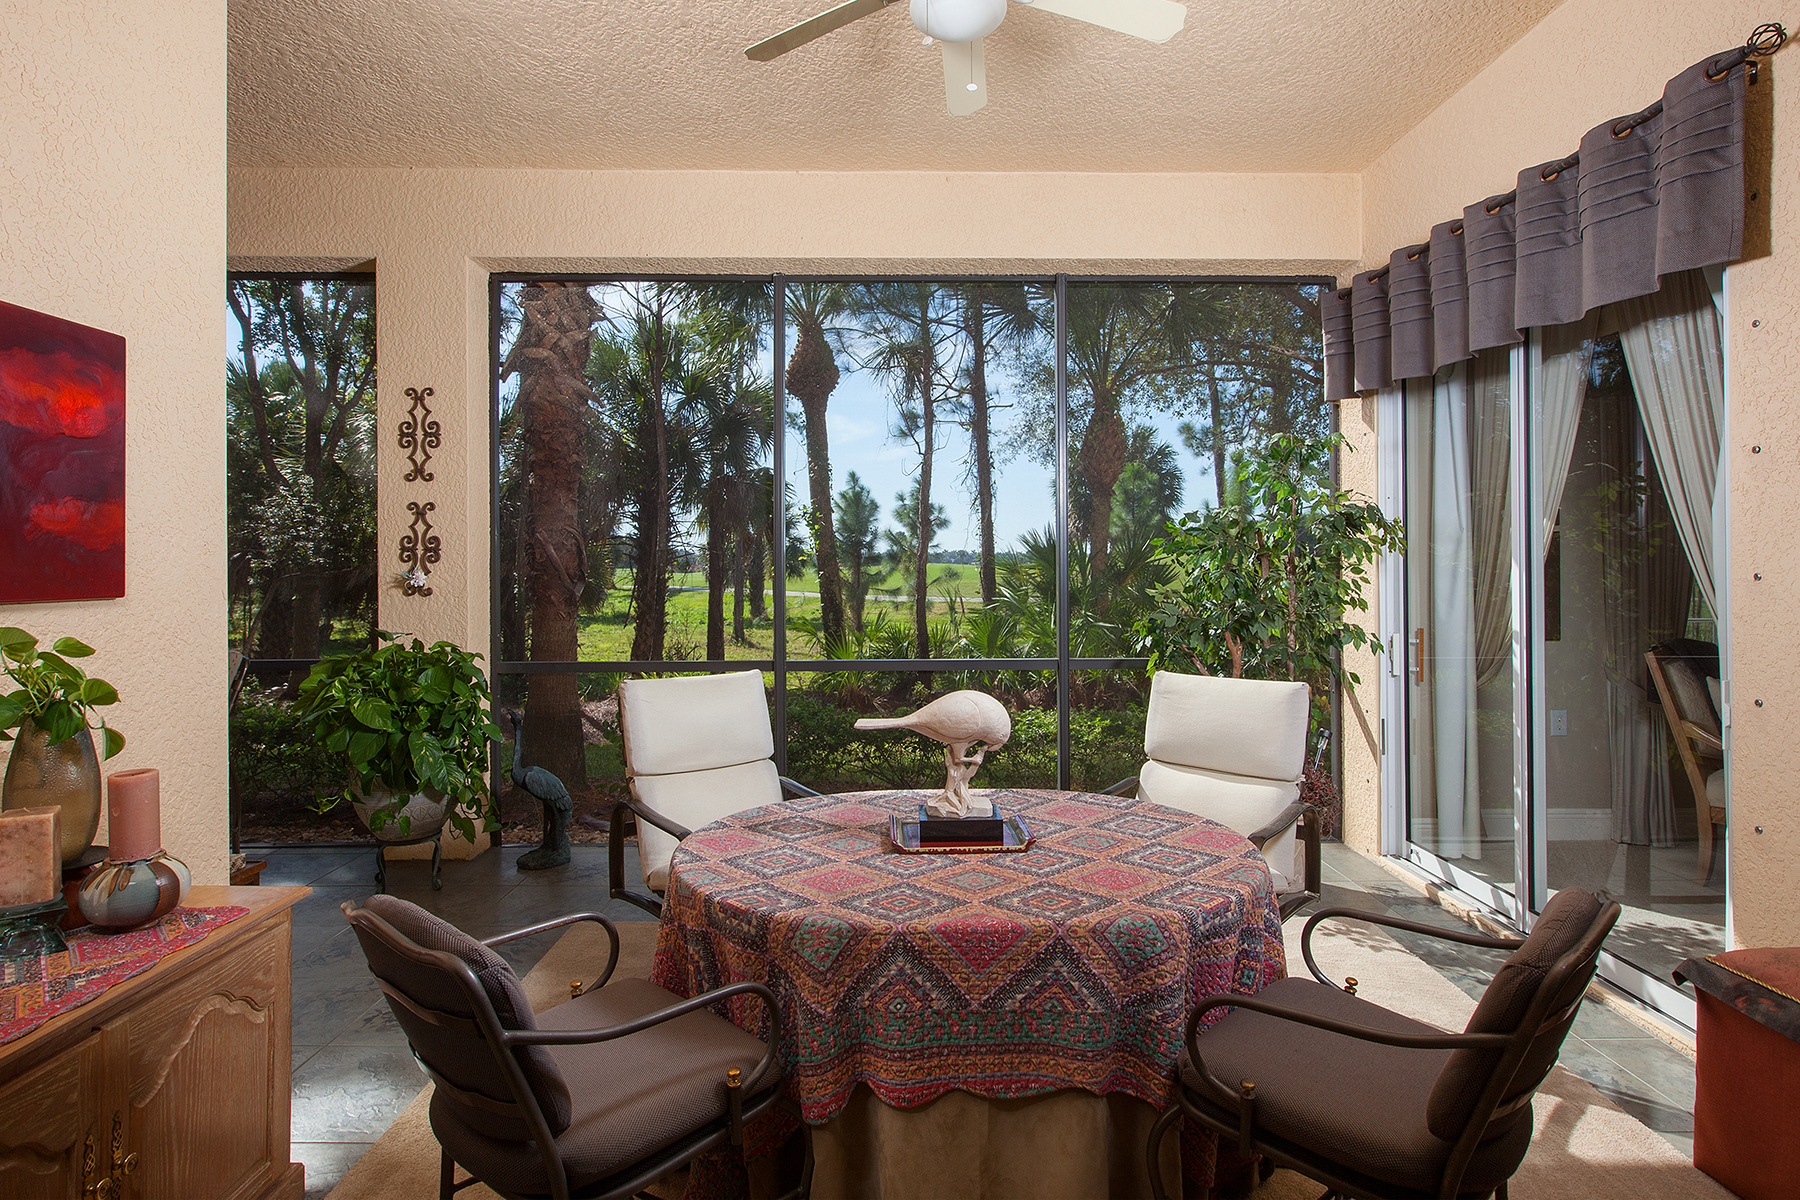 Condominium for Sale at FIDDLERS CREEK 9130 Cherry Oaks Ln 101 Naples, Florida, 34114 United States